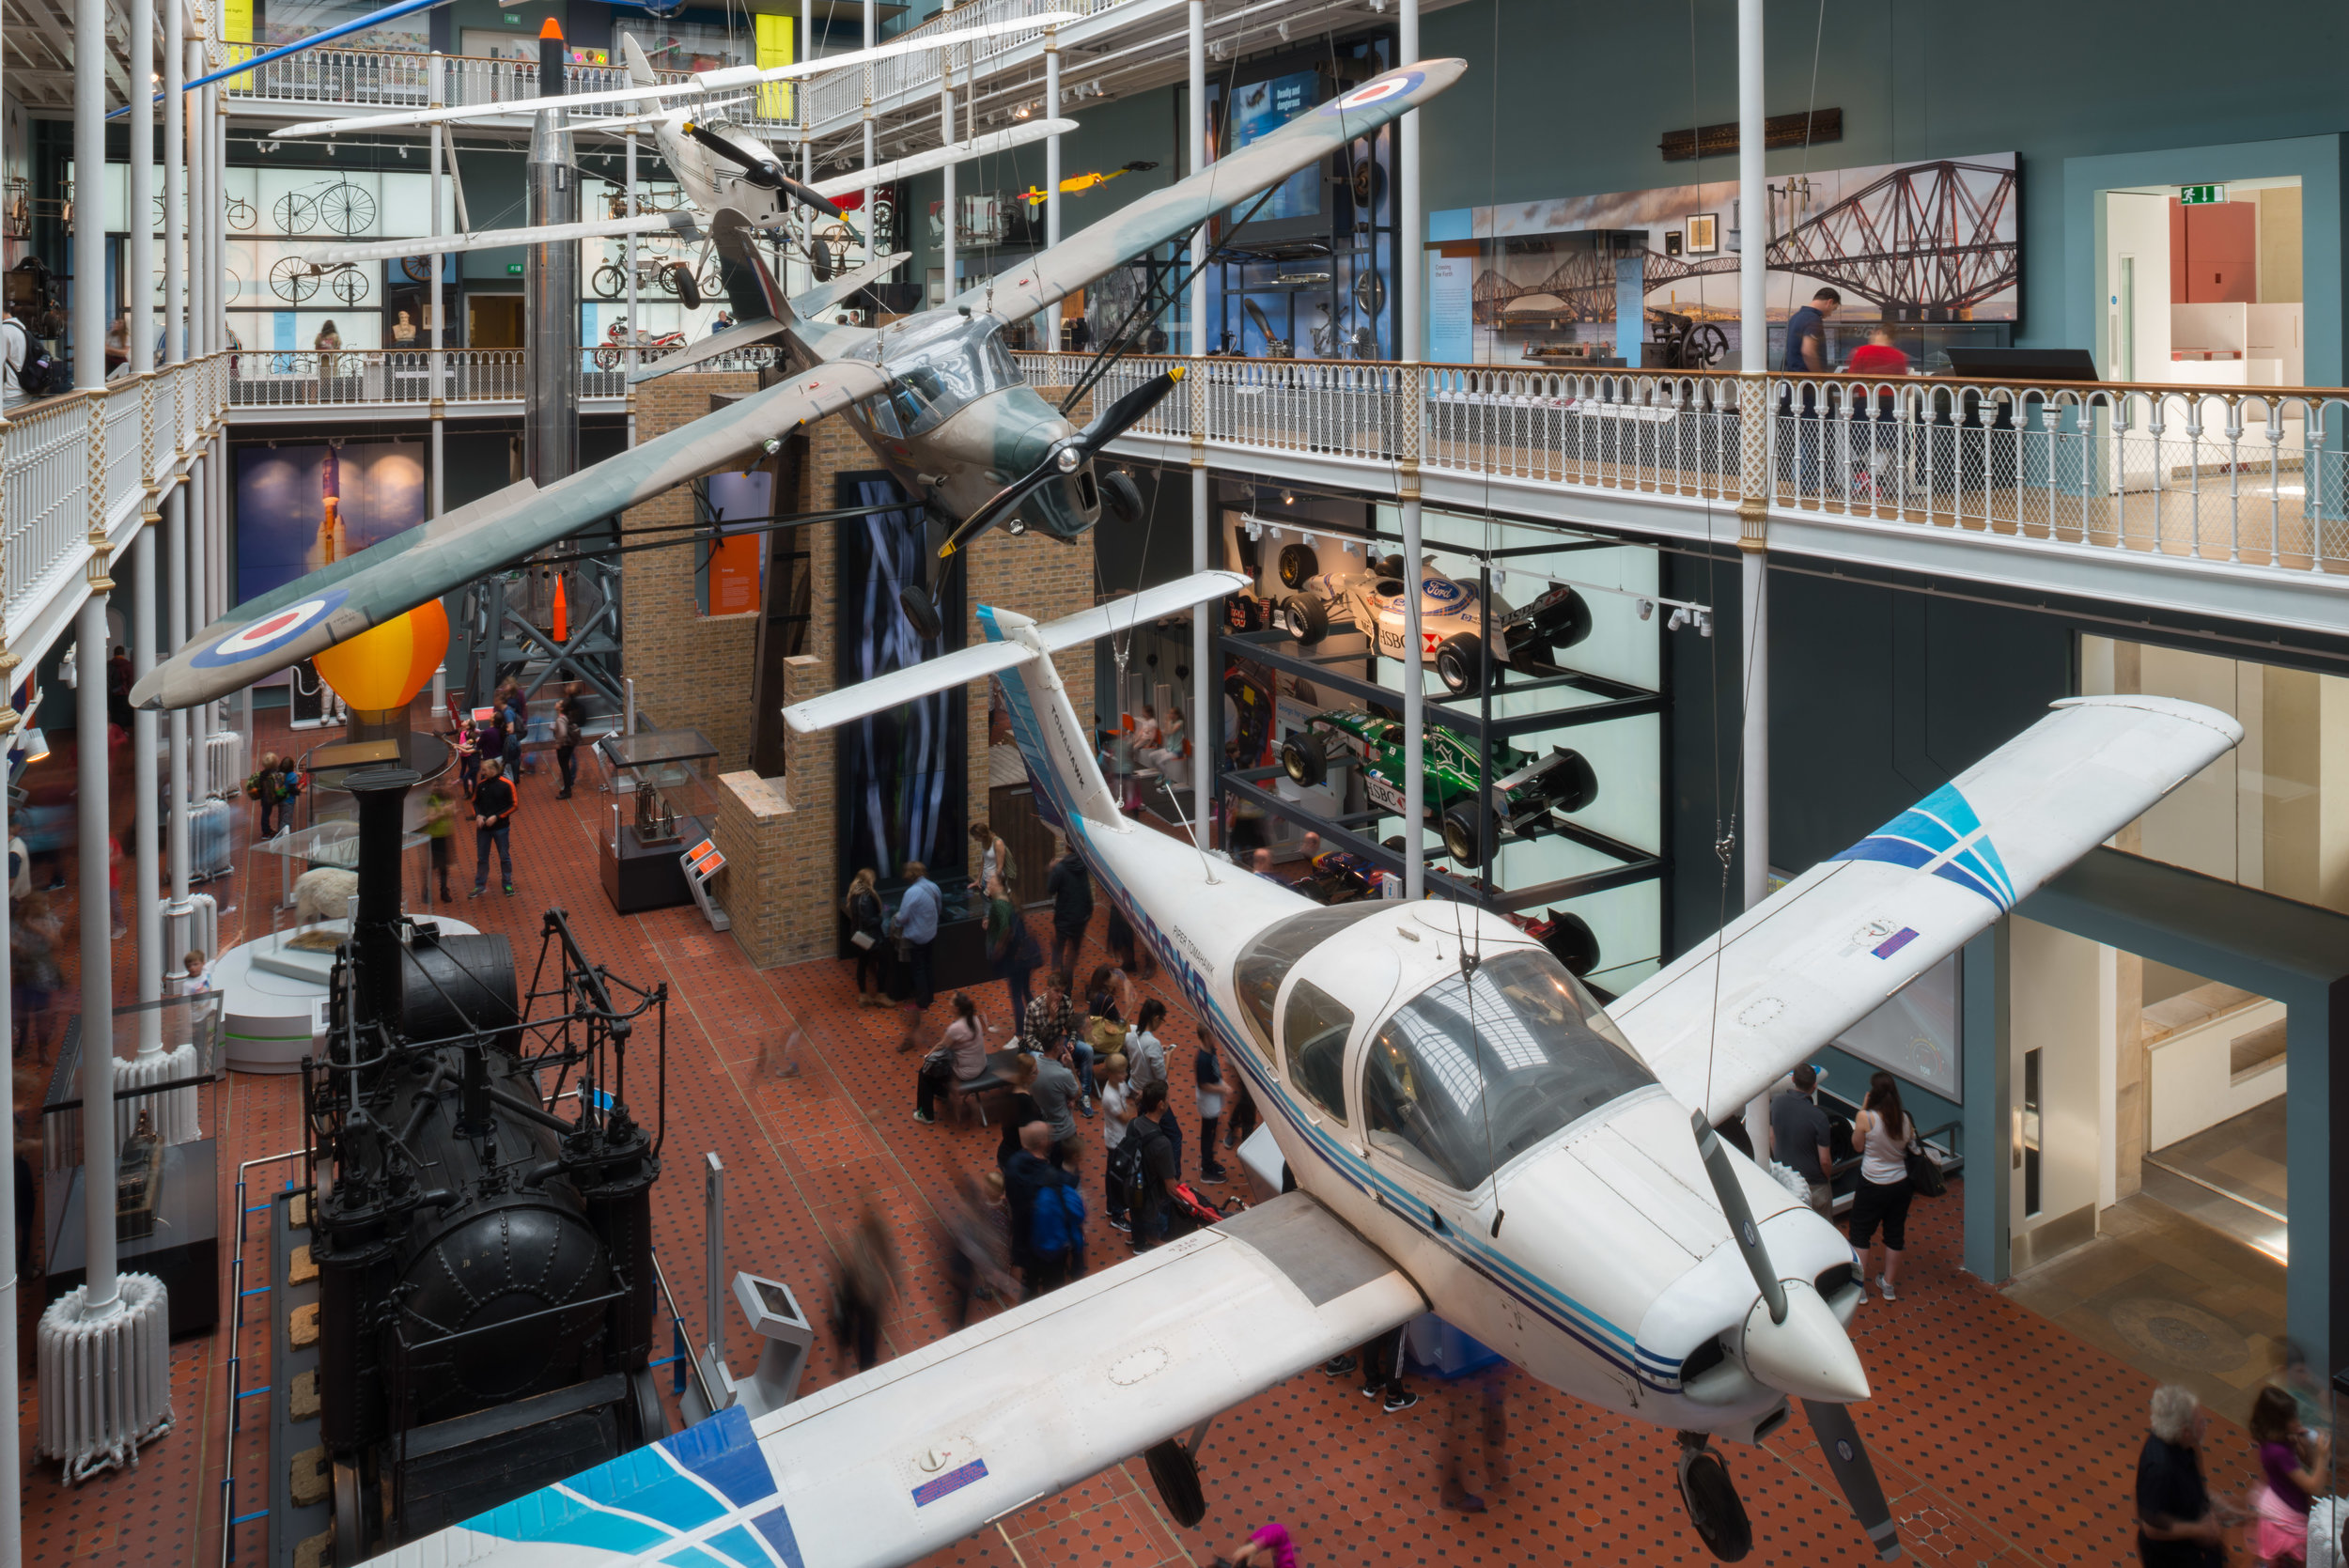 The Science and Technology galleries at National Museums Scotland which opened 2016.